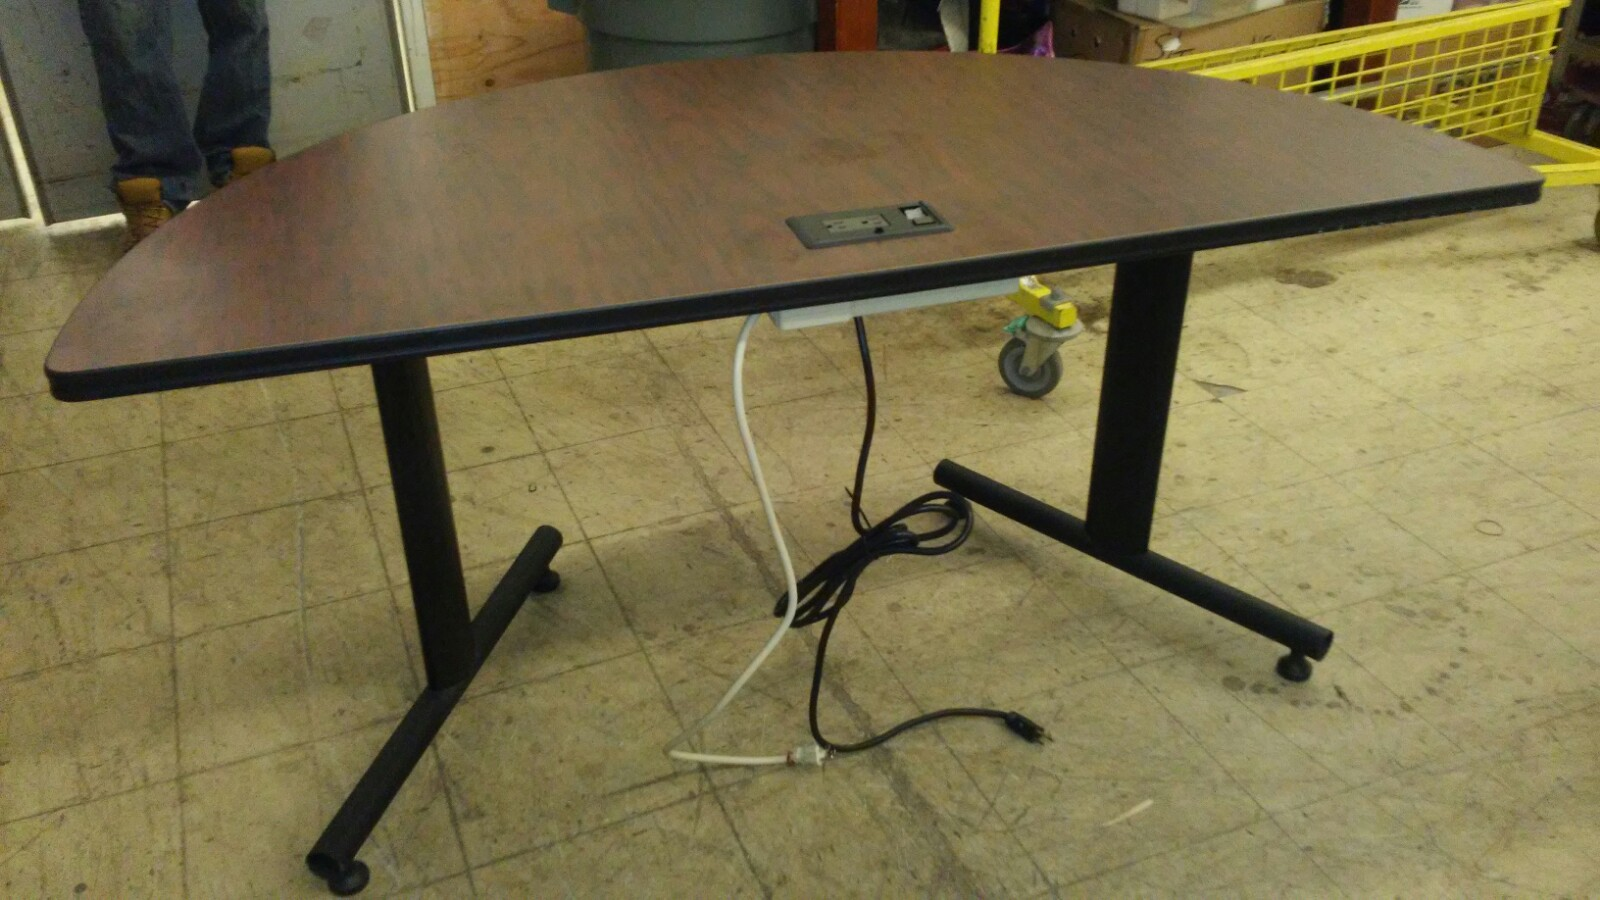 Crescent/Half Circle Computer Desk For Sale w/ Outlet & Plug - 5ft at Longest Length - 29 Inches at Longest Width - 29 Inches from Ground - Used 2 Available